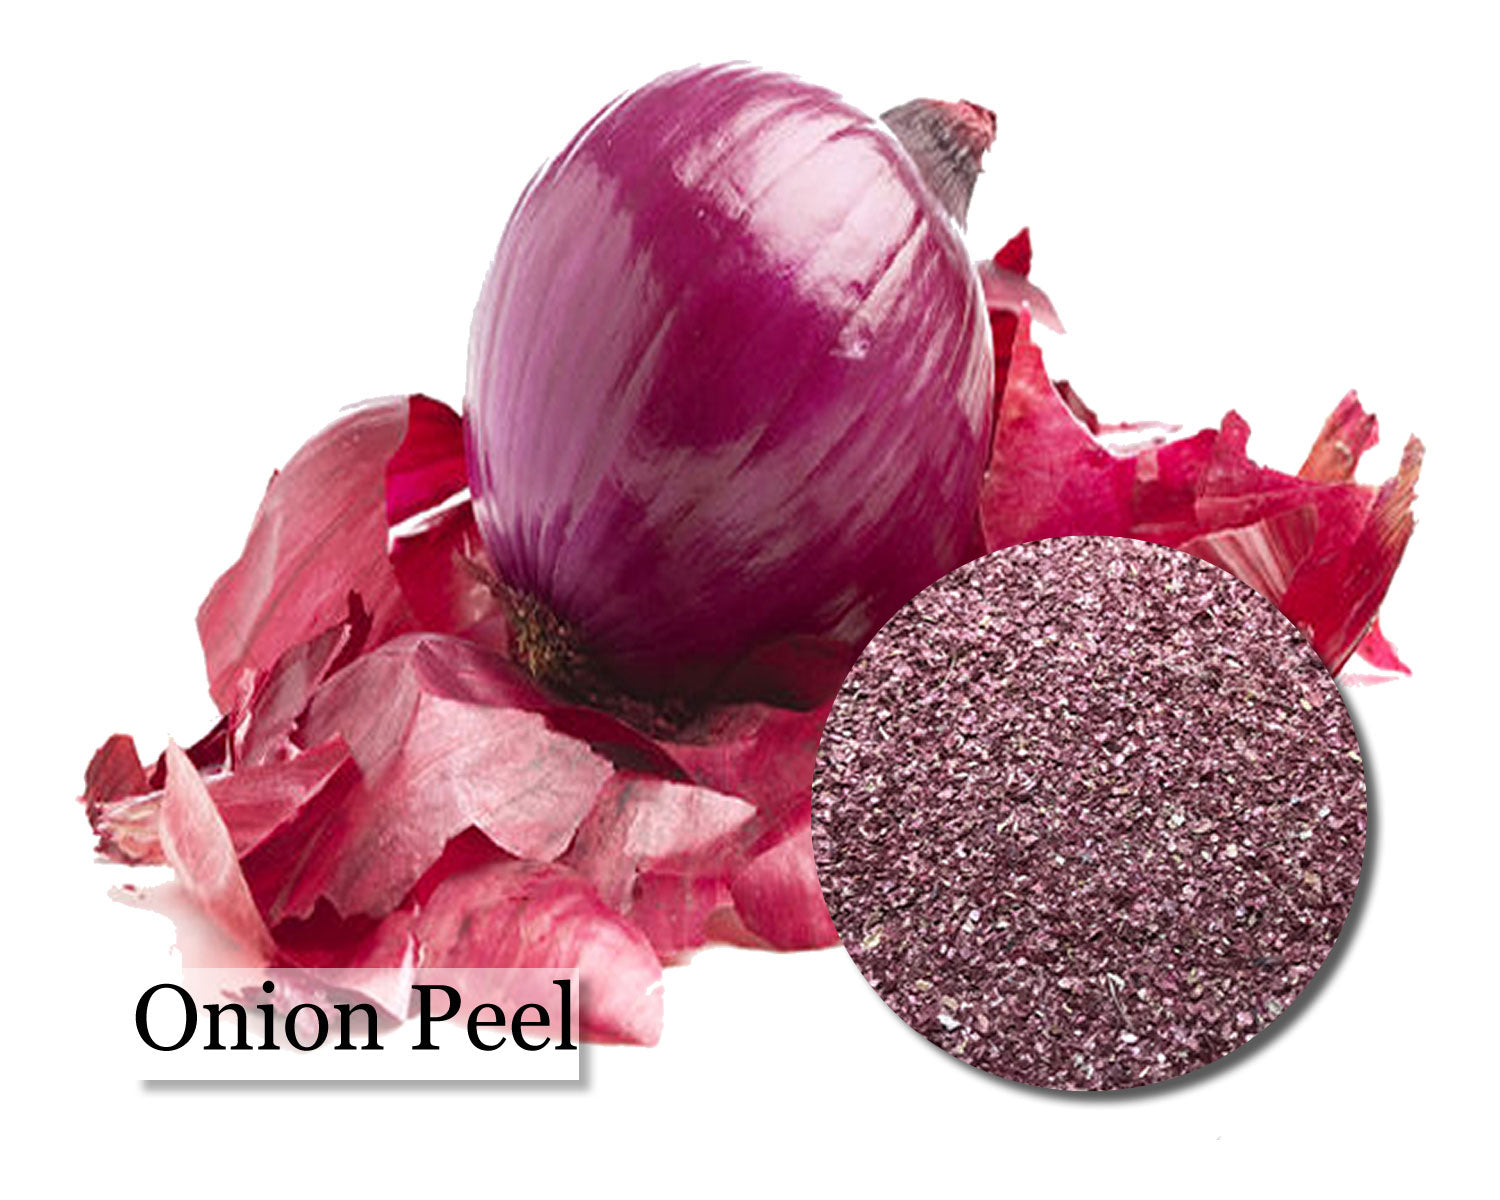 Onion Peel 8oz